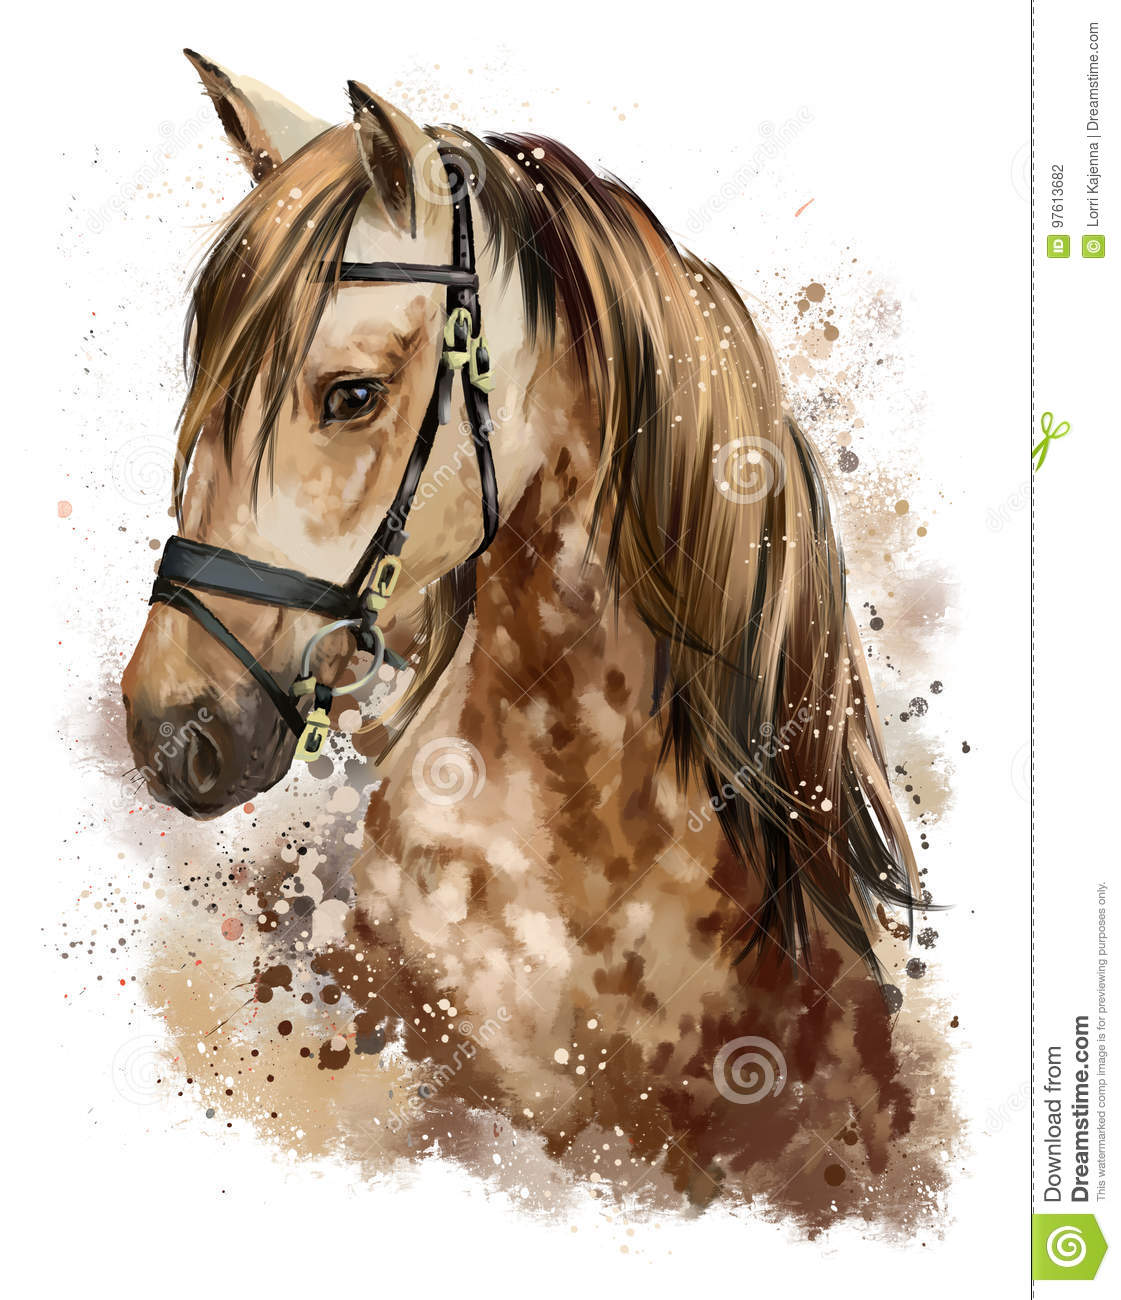 Dessin de t te de cheval illustration stock illustration du nature 97613682 - Dessin de tete de cheval ...